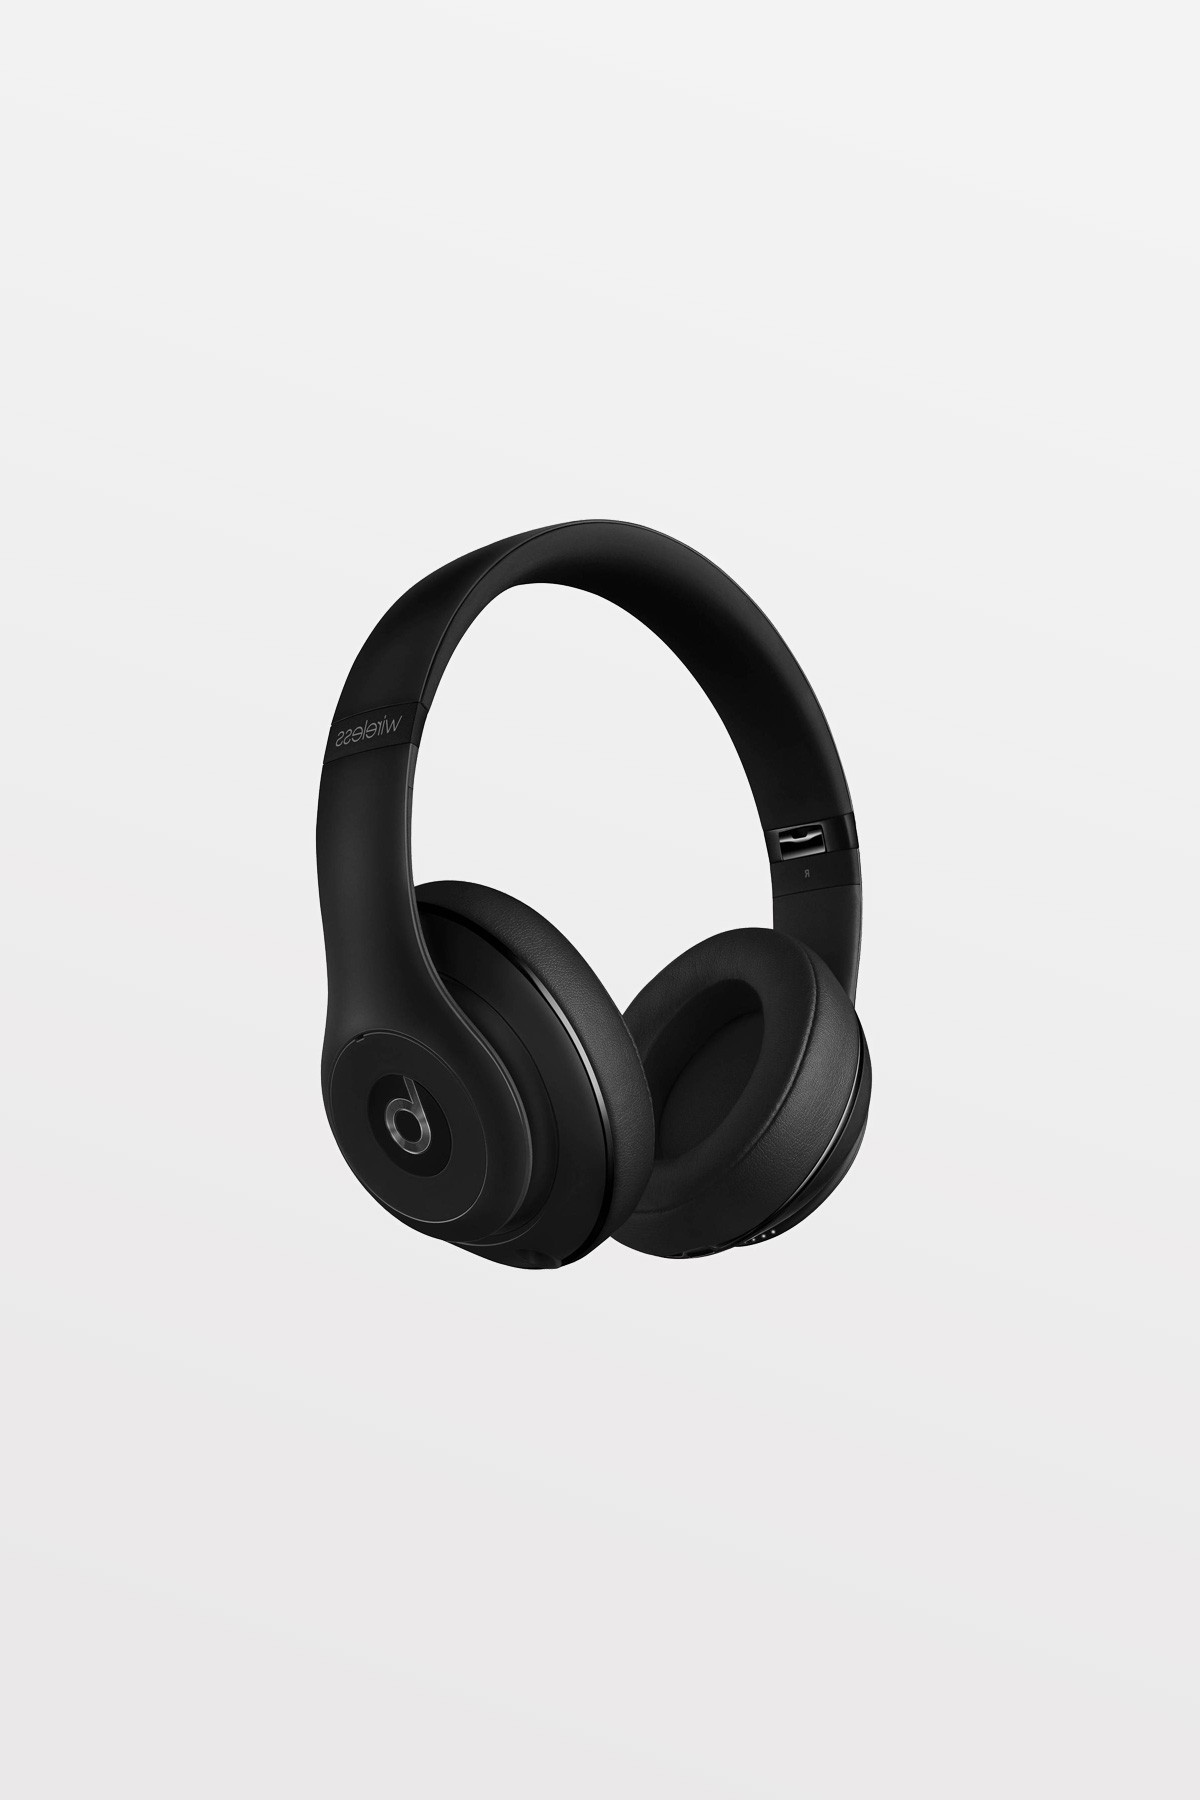 Beats Studio Wireless Over-Ear - Black - Refurbished